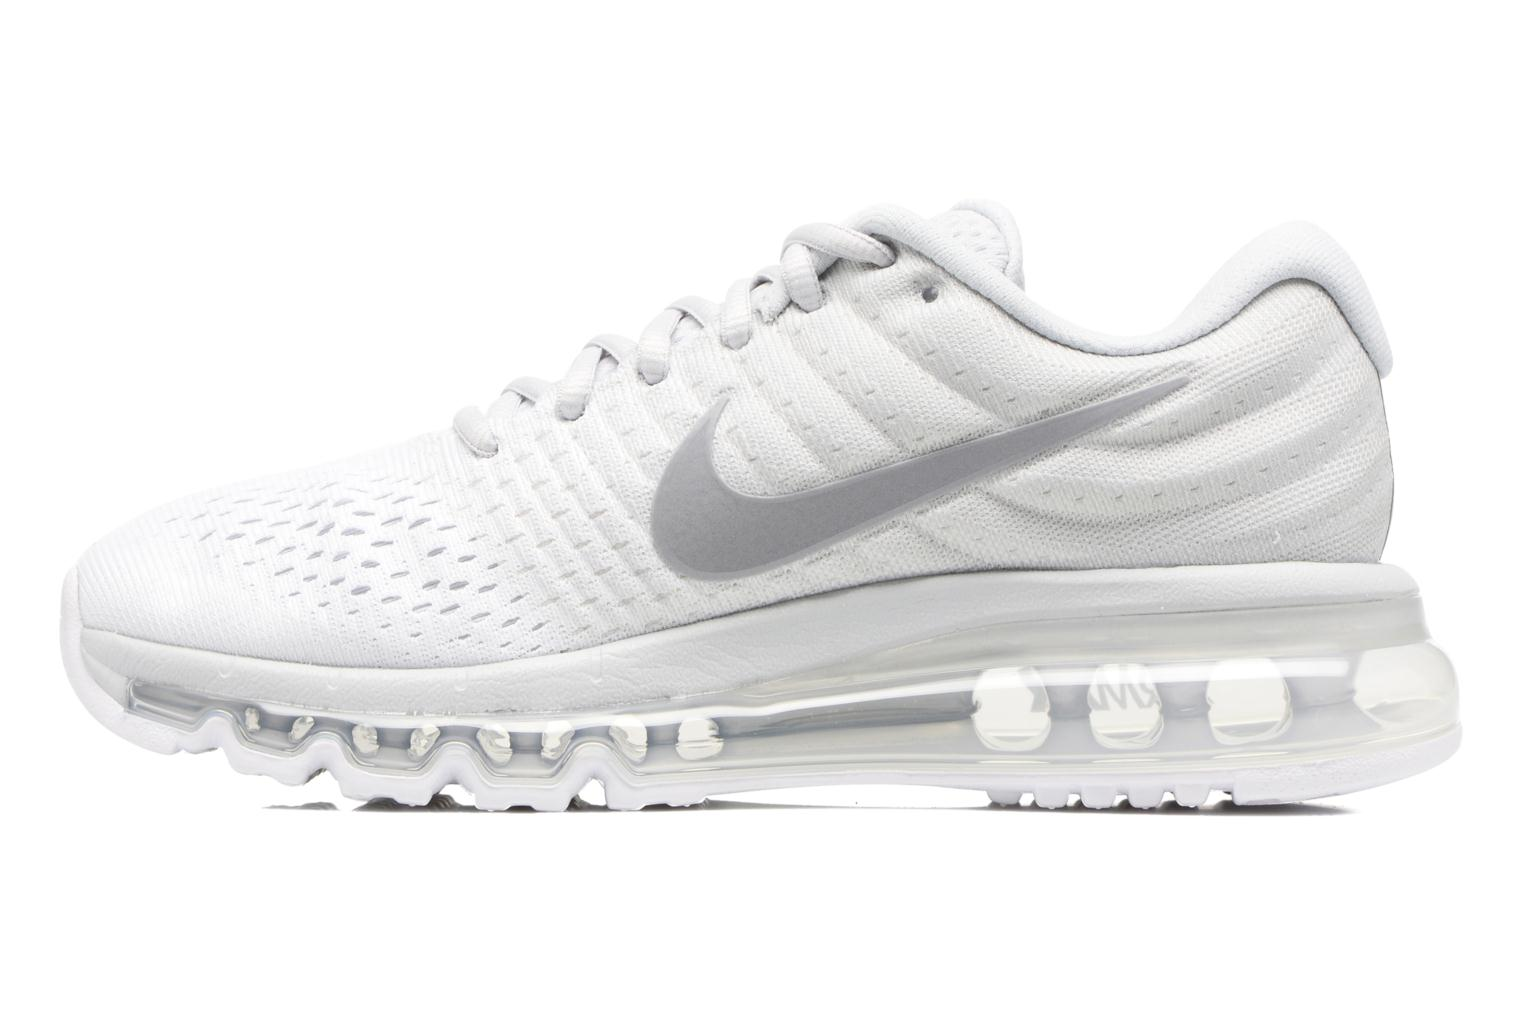 Wmns Nike Air Max 2017 PURE PLATINUM/WOLF GREY-WHITE-OFF WHITE